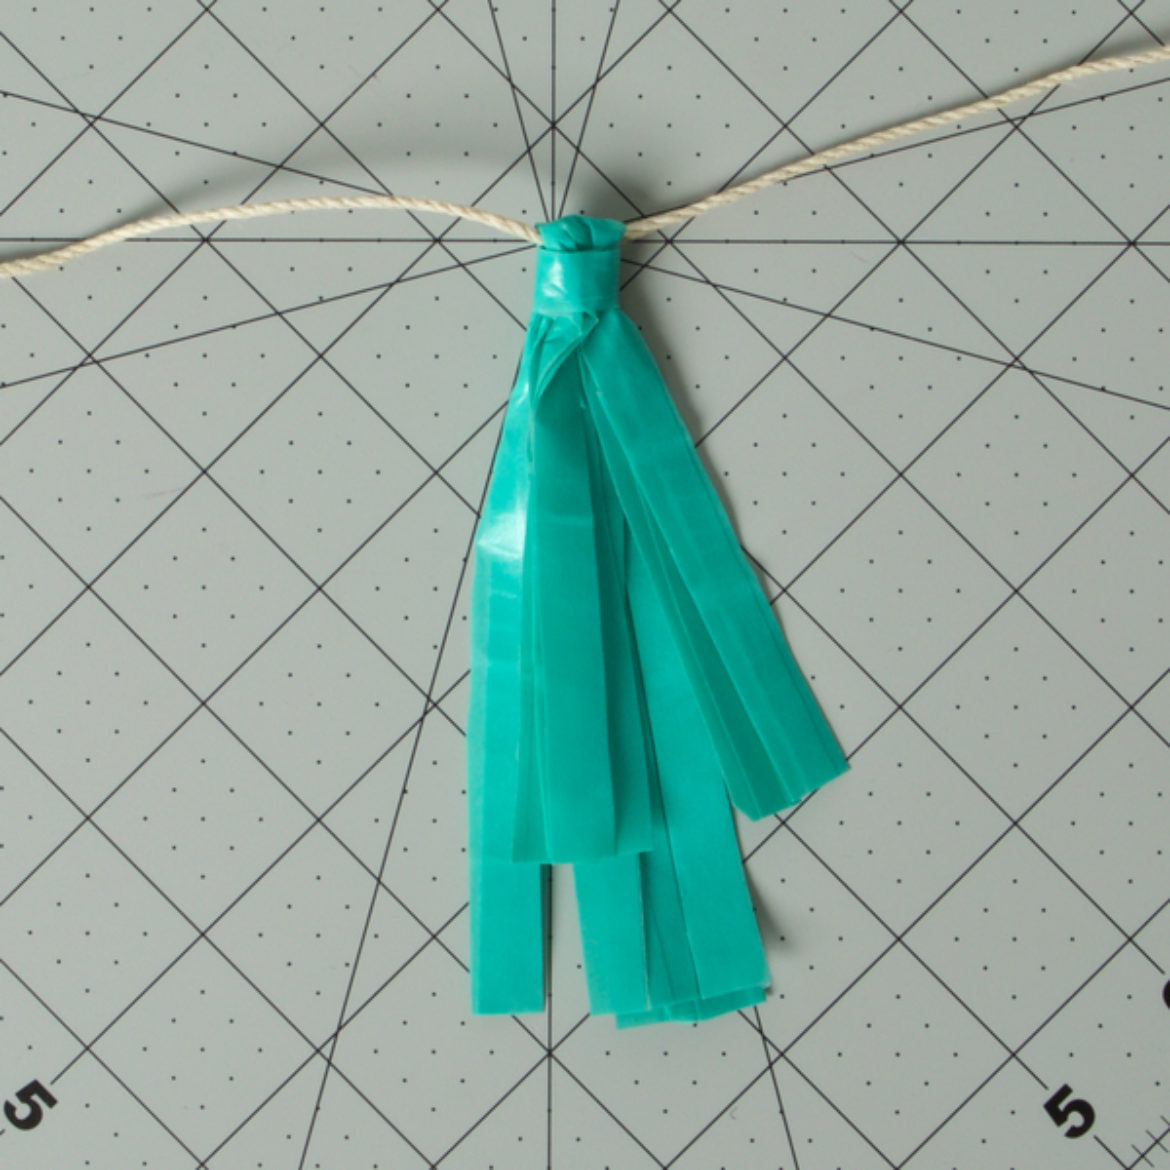 Small Tassle Garland Step 3